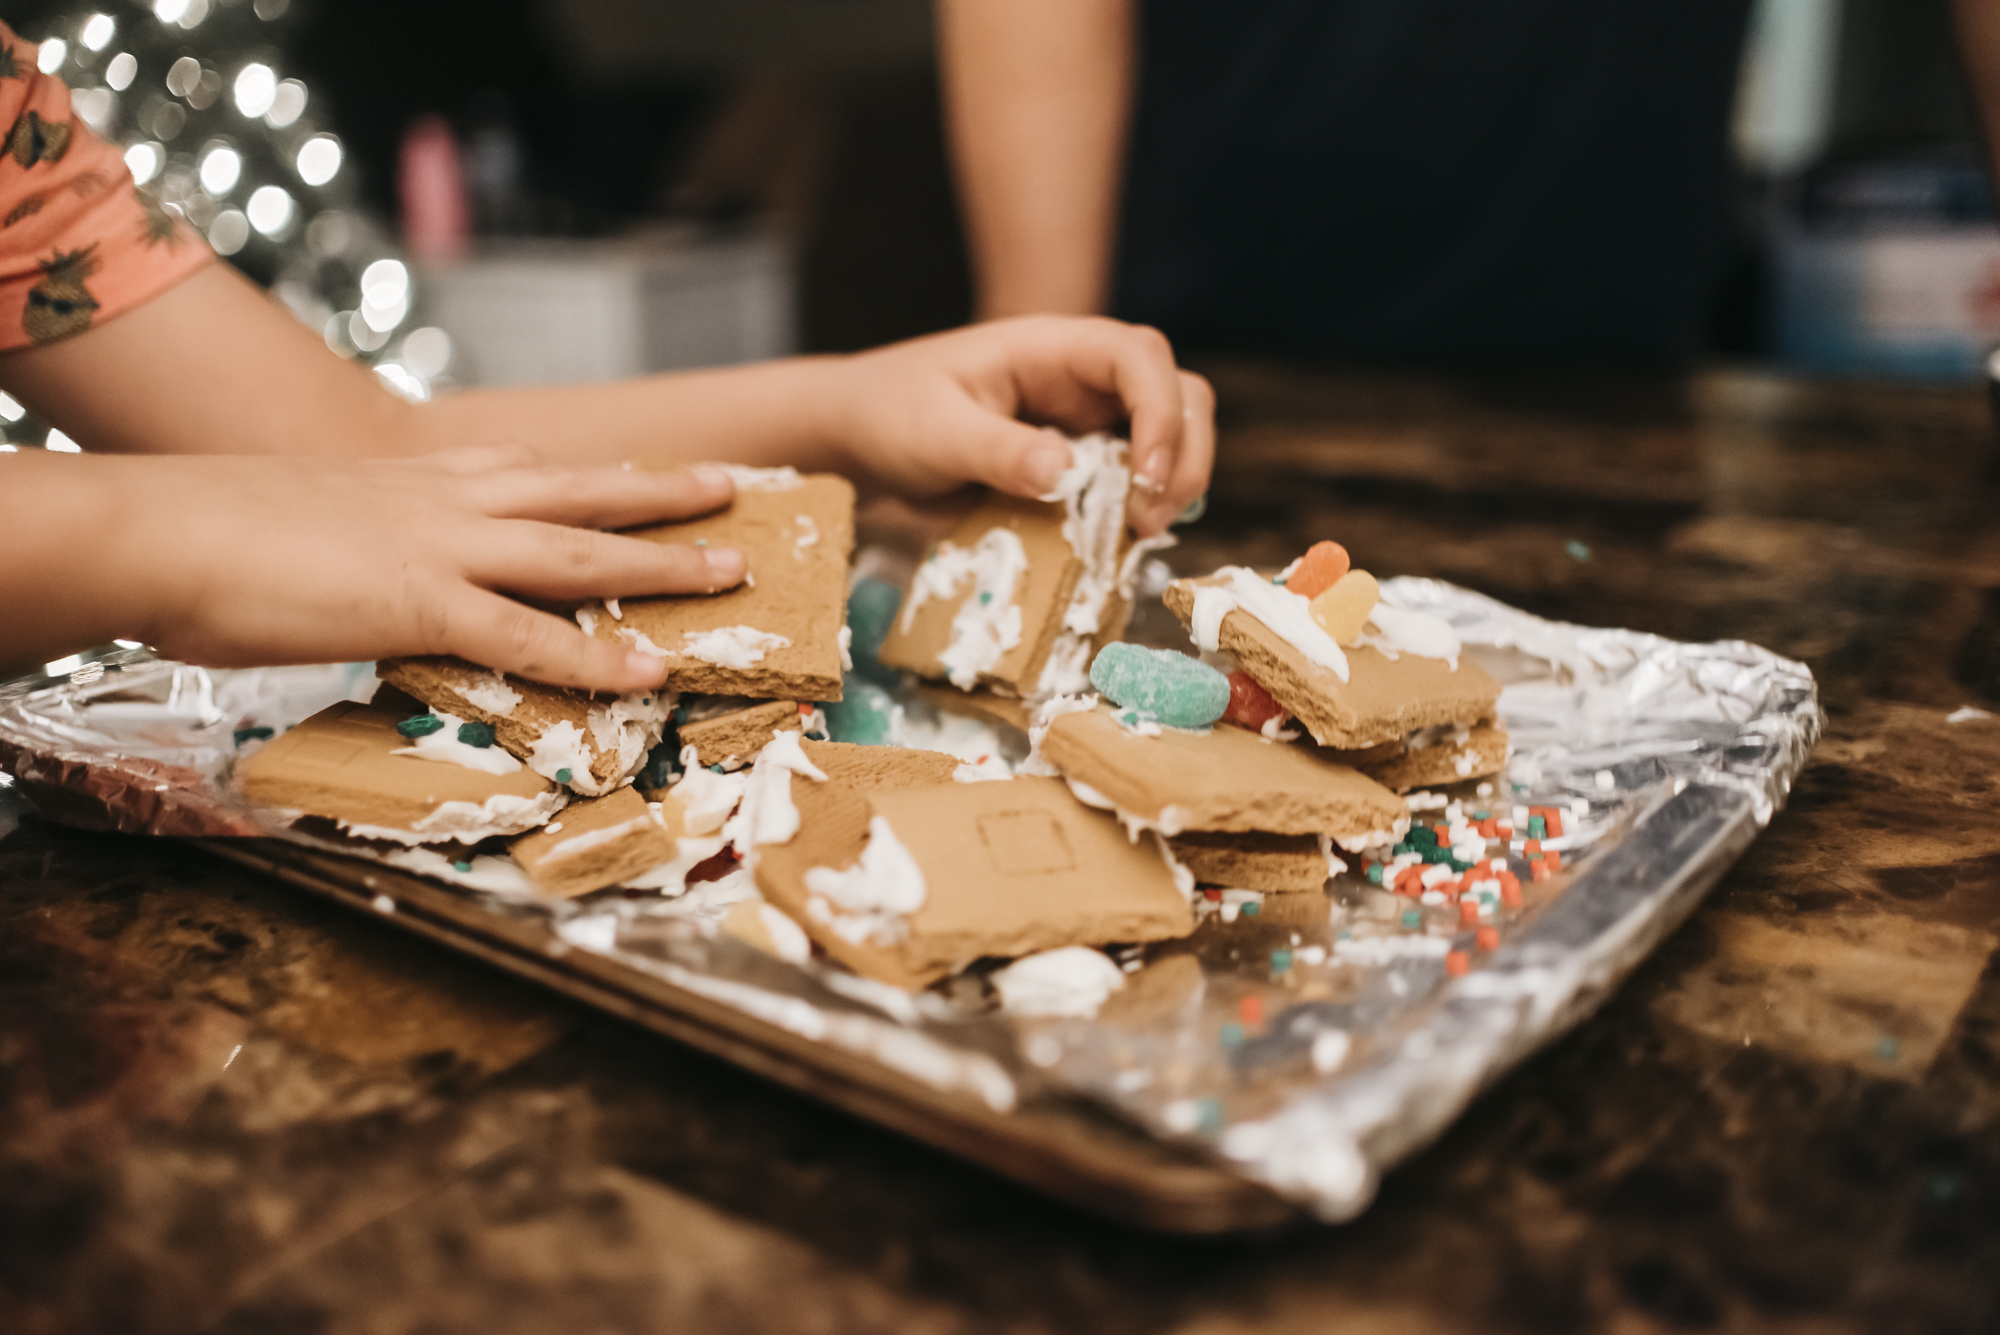 samanthawhitford.com gingerbread village christmas 2018 (21).jpg